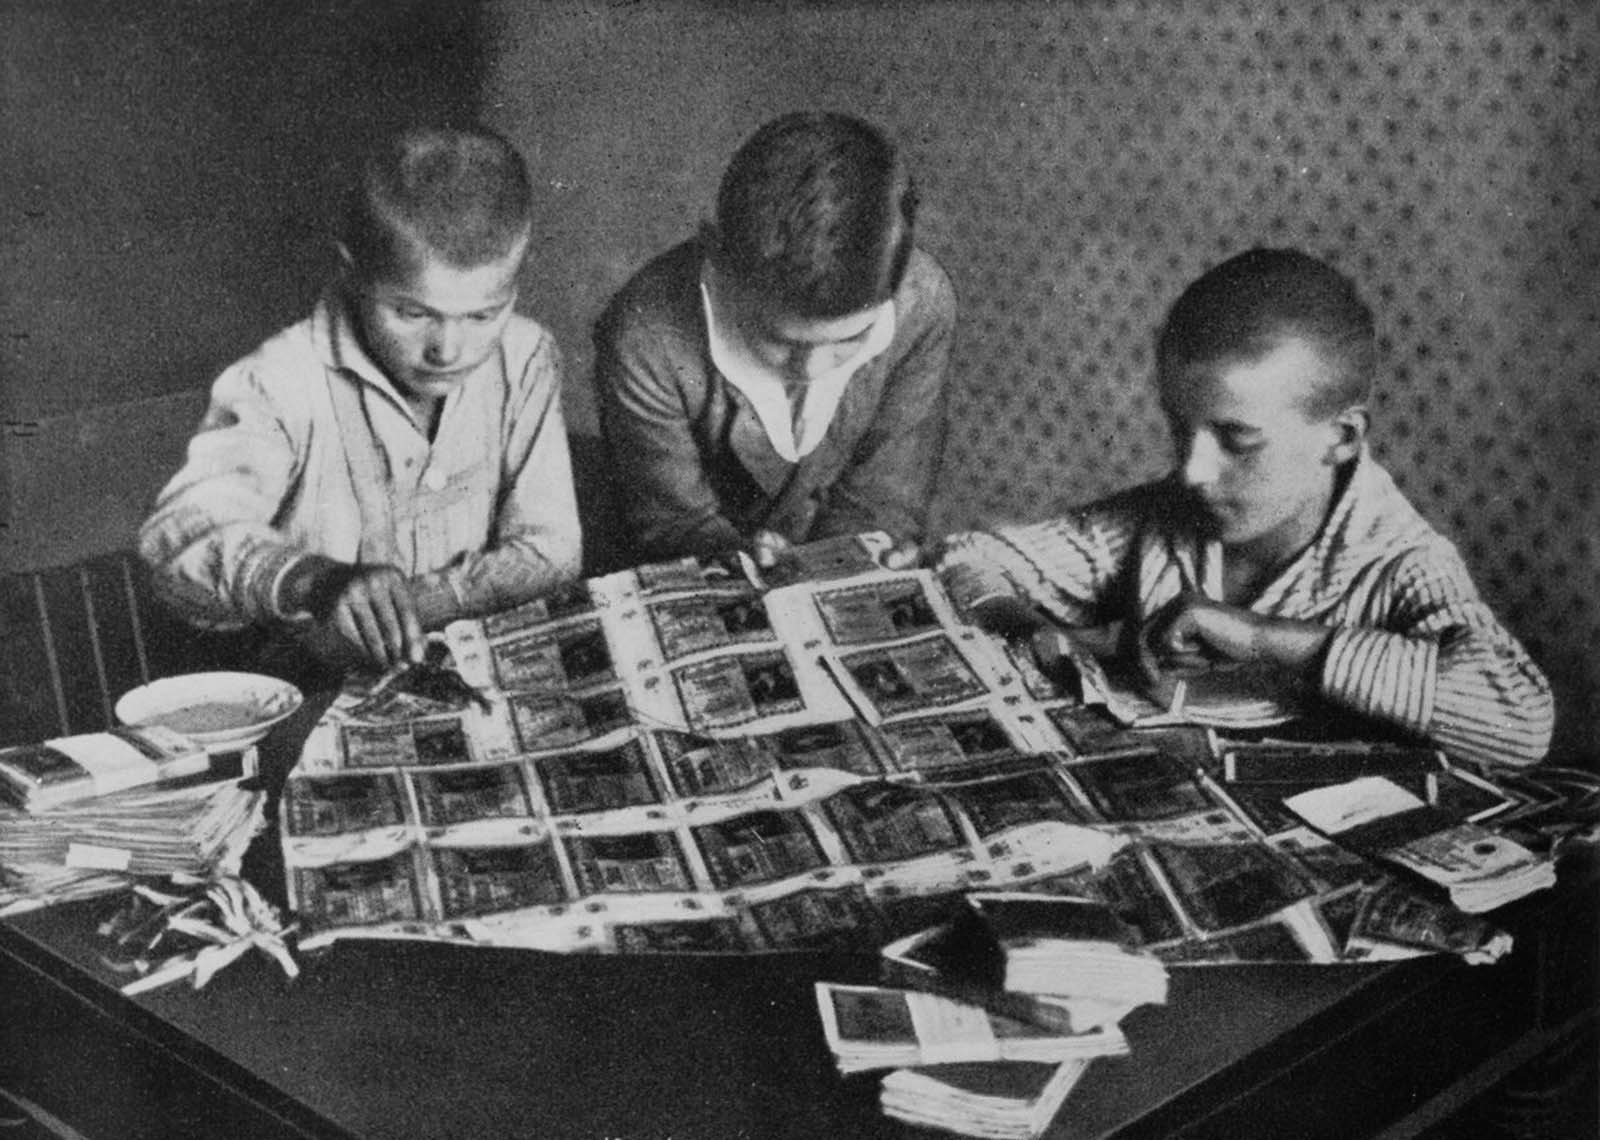 Boys use worthless banknotes for arts and crafts. 1923.